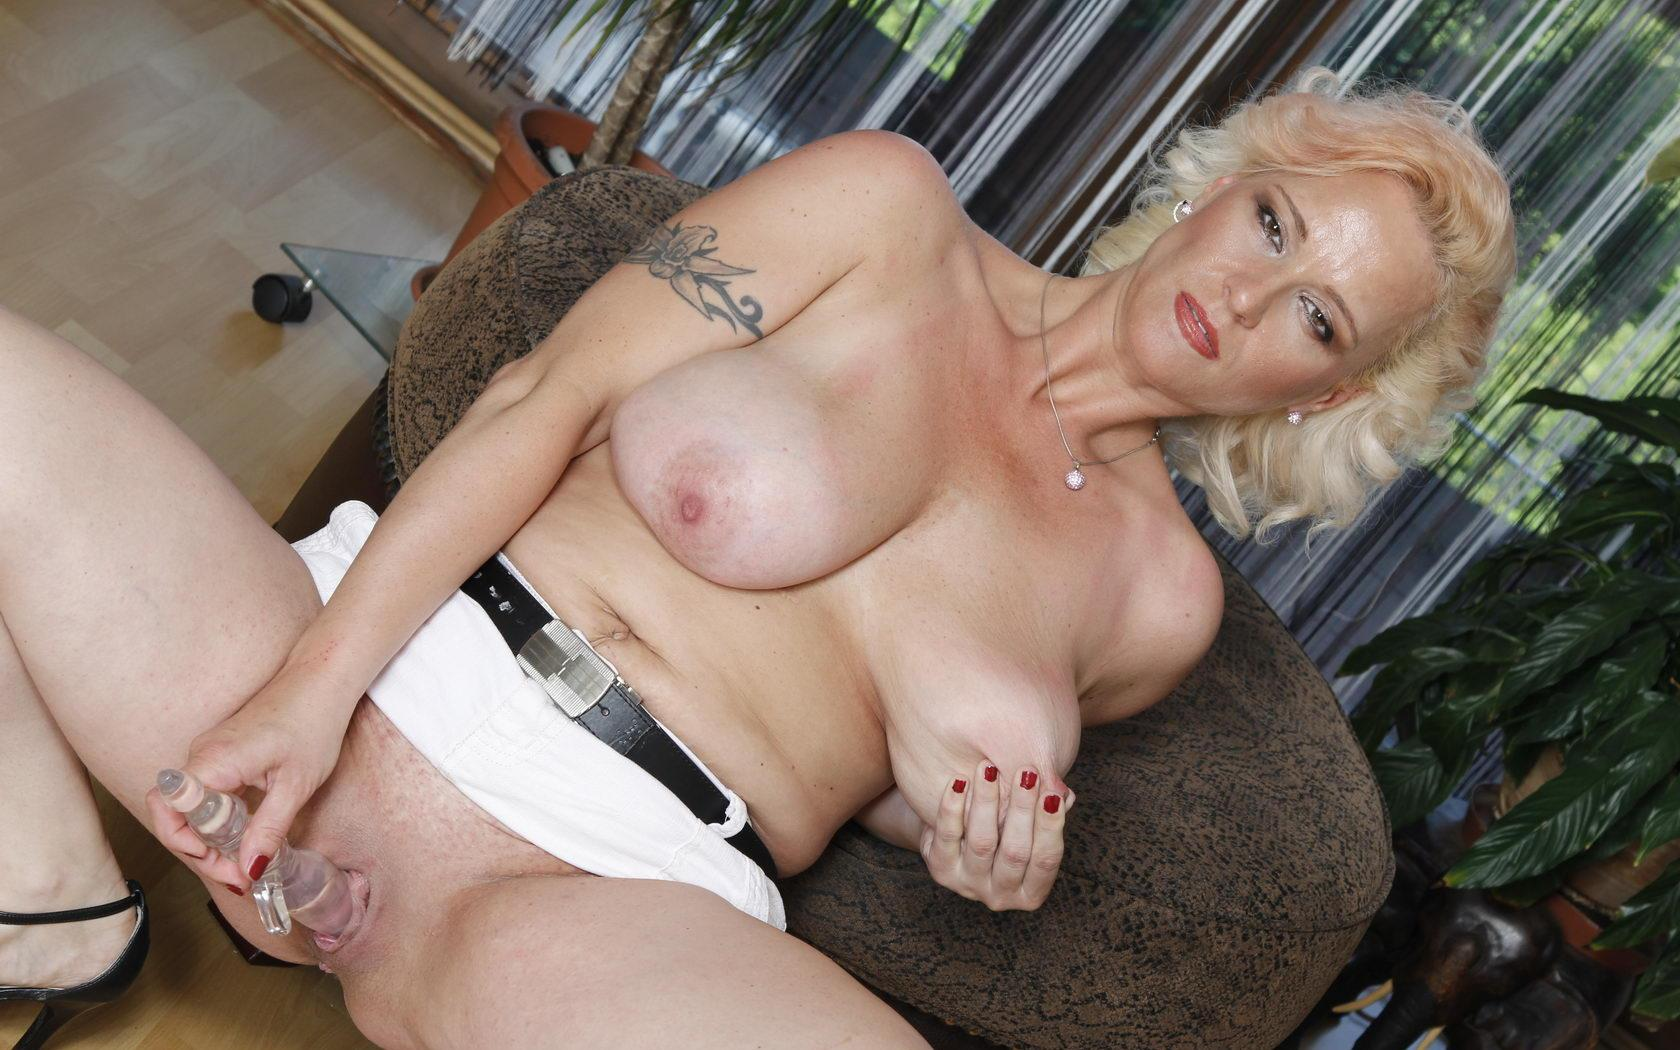 Regina a wet granny is an attractive older woman who invites you to cum on her boobs